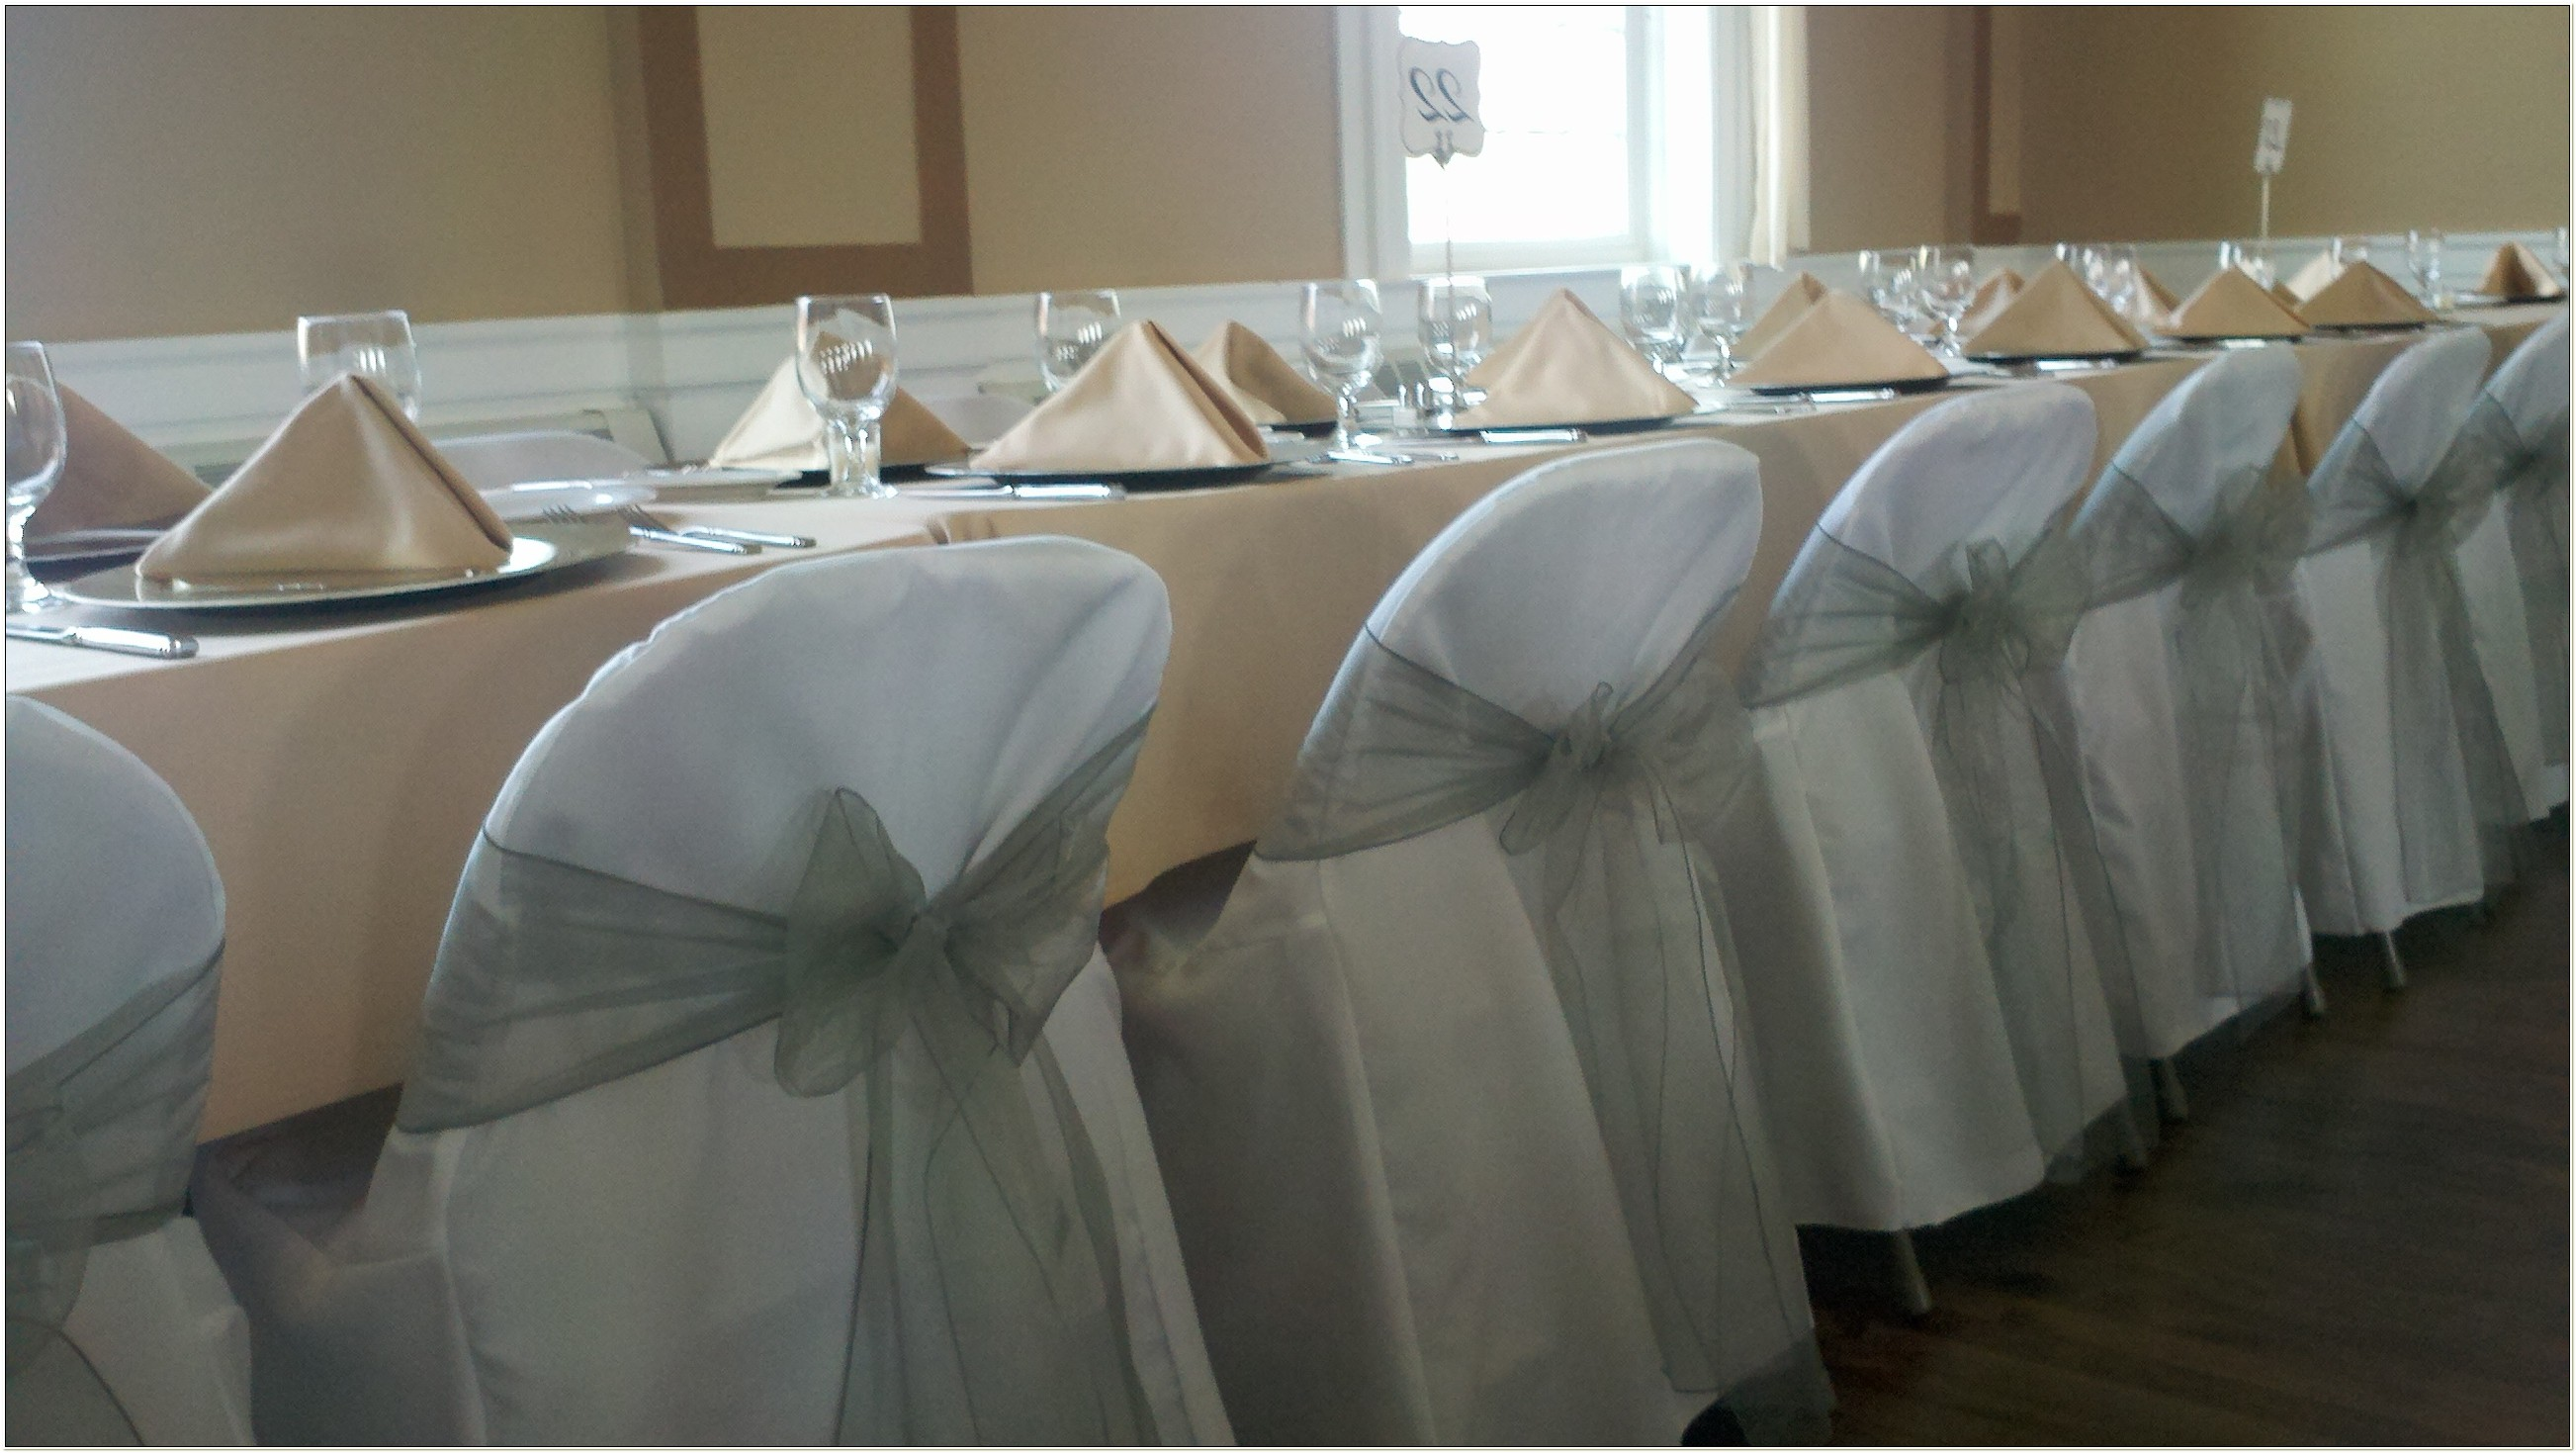 Organza Sashes For Chair Covers